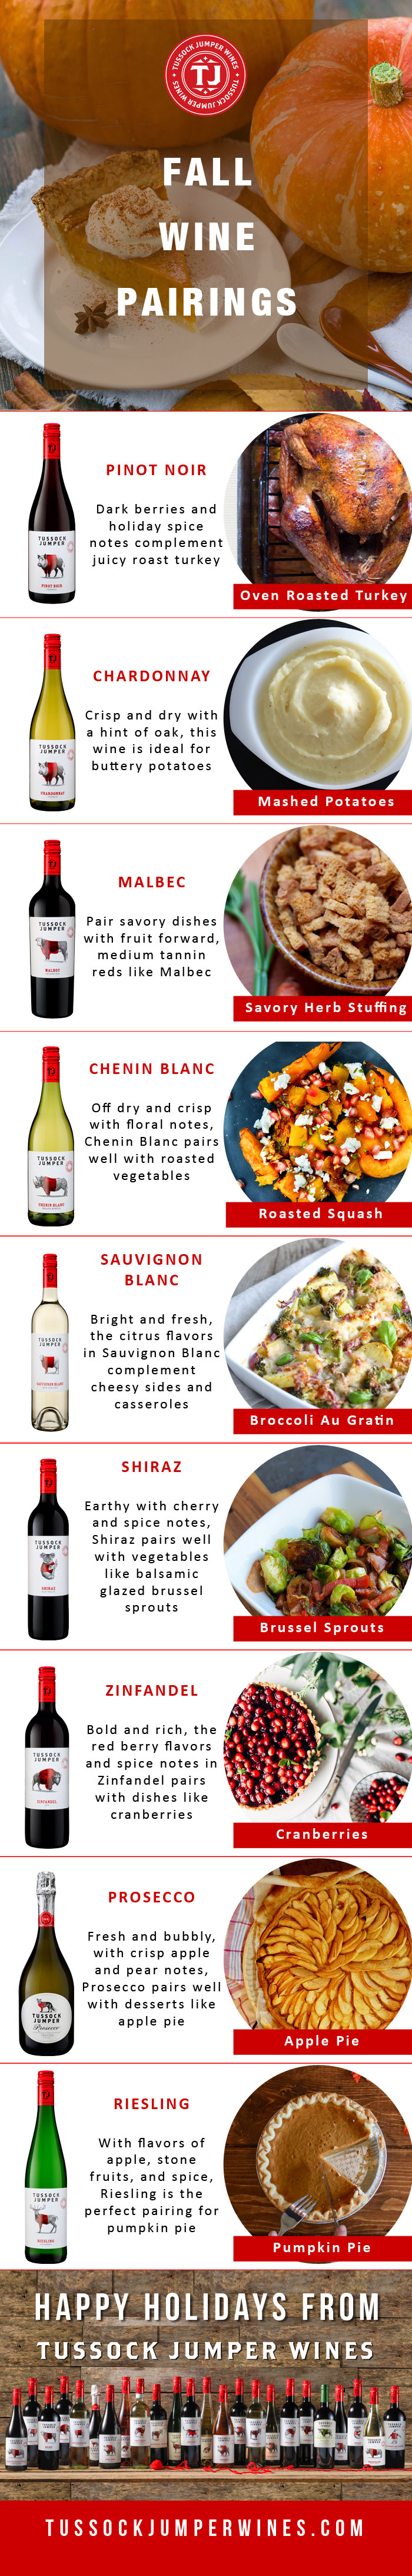 Fall Wine Pairings